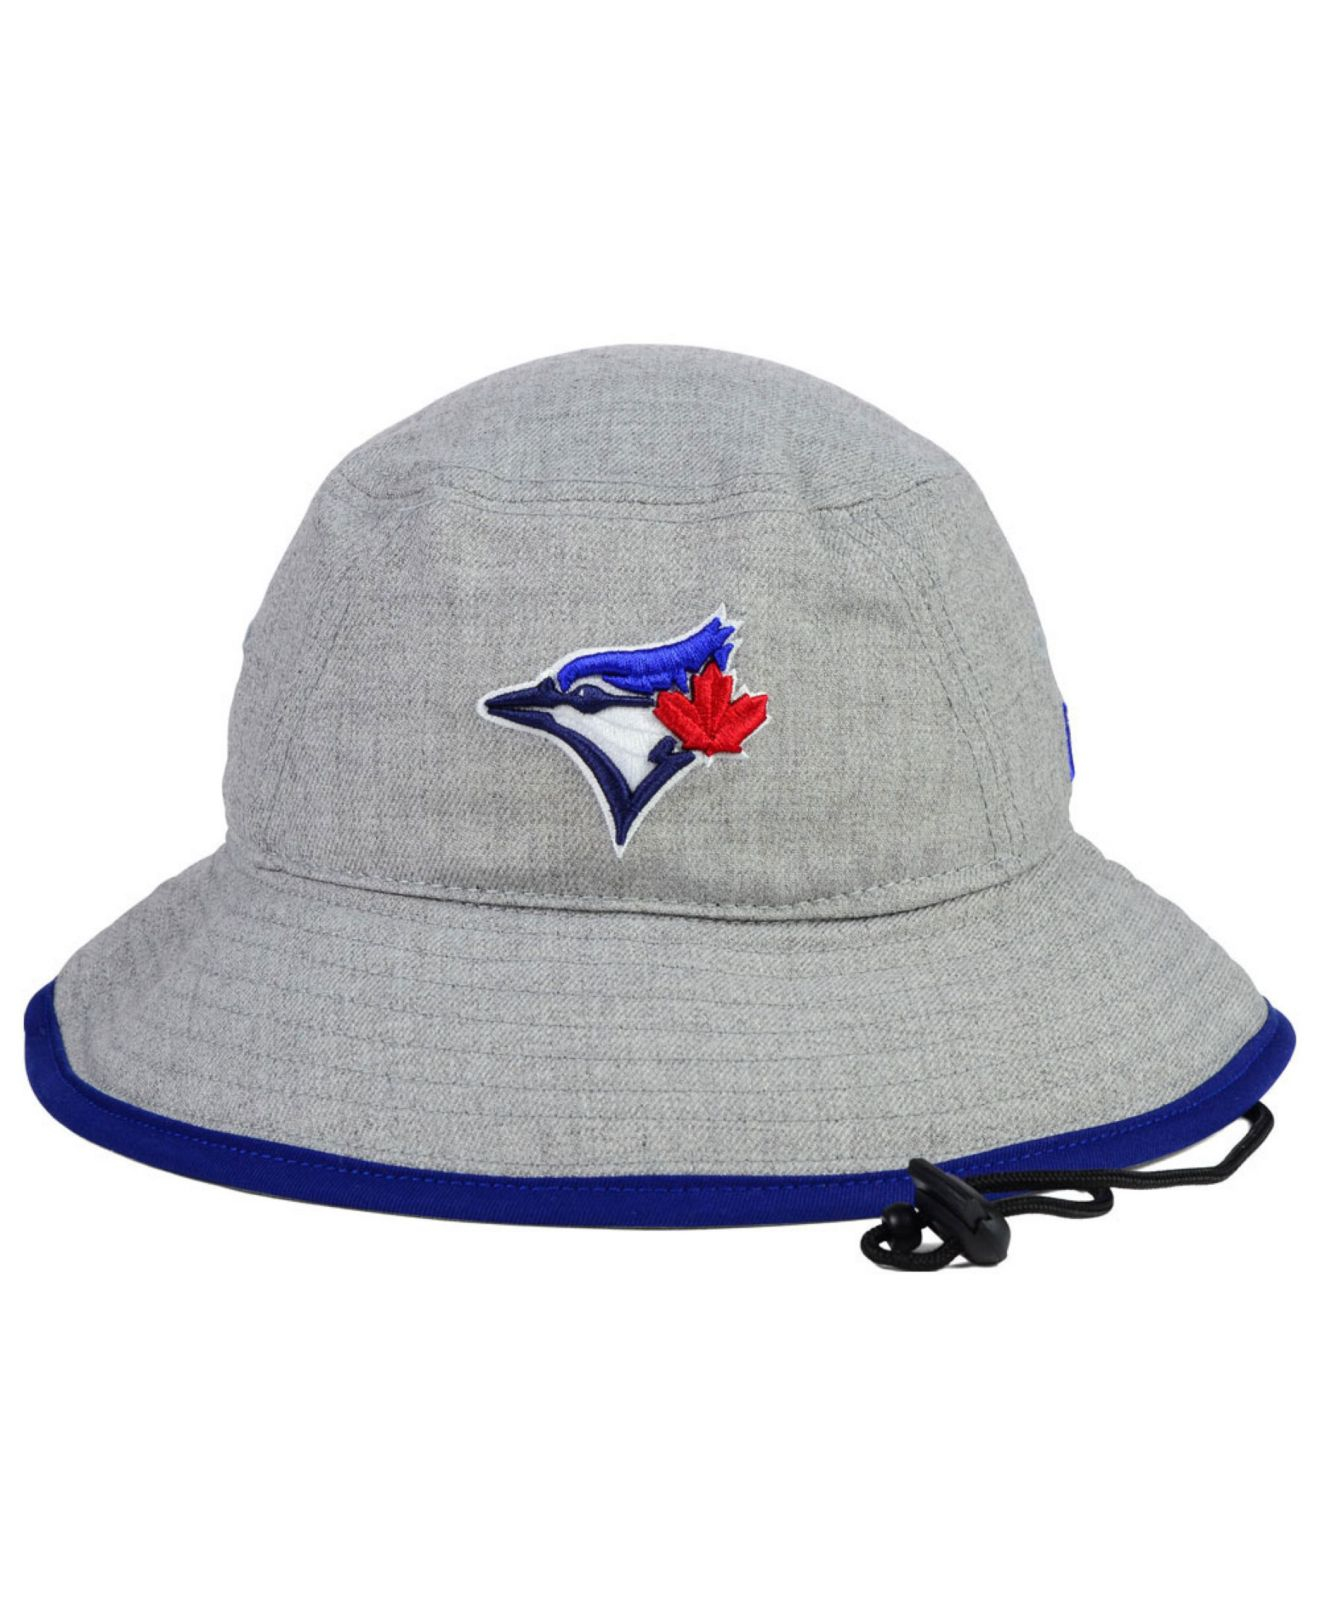 sports shoes ae8c4 a6bd4 ... denmark lyst ktz toronto blue jays heather tipped bucket hat in gray  for men c823c 00b6c